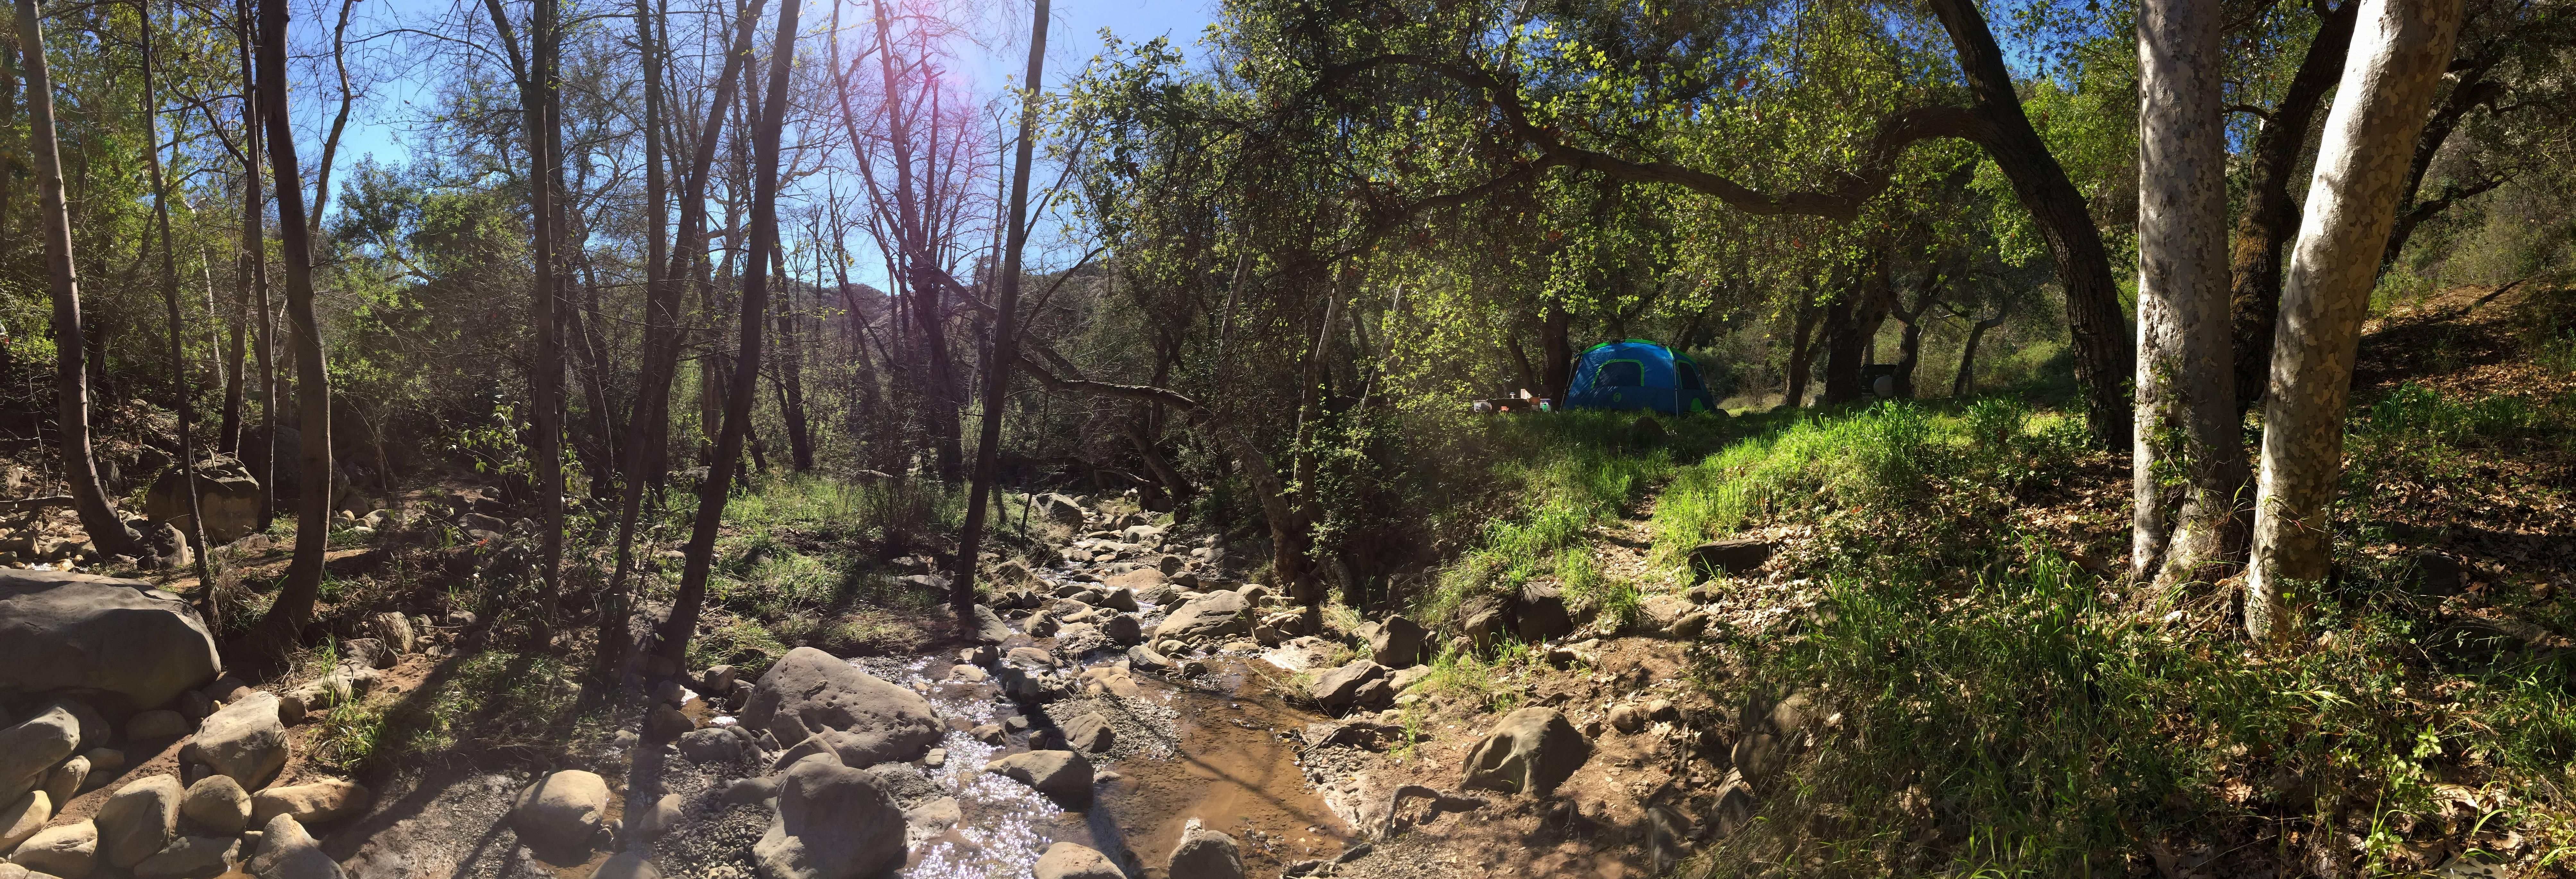 Our awesome campsite last weekend at Wheeler Gorge- Ojai CA